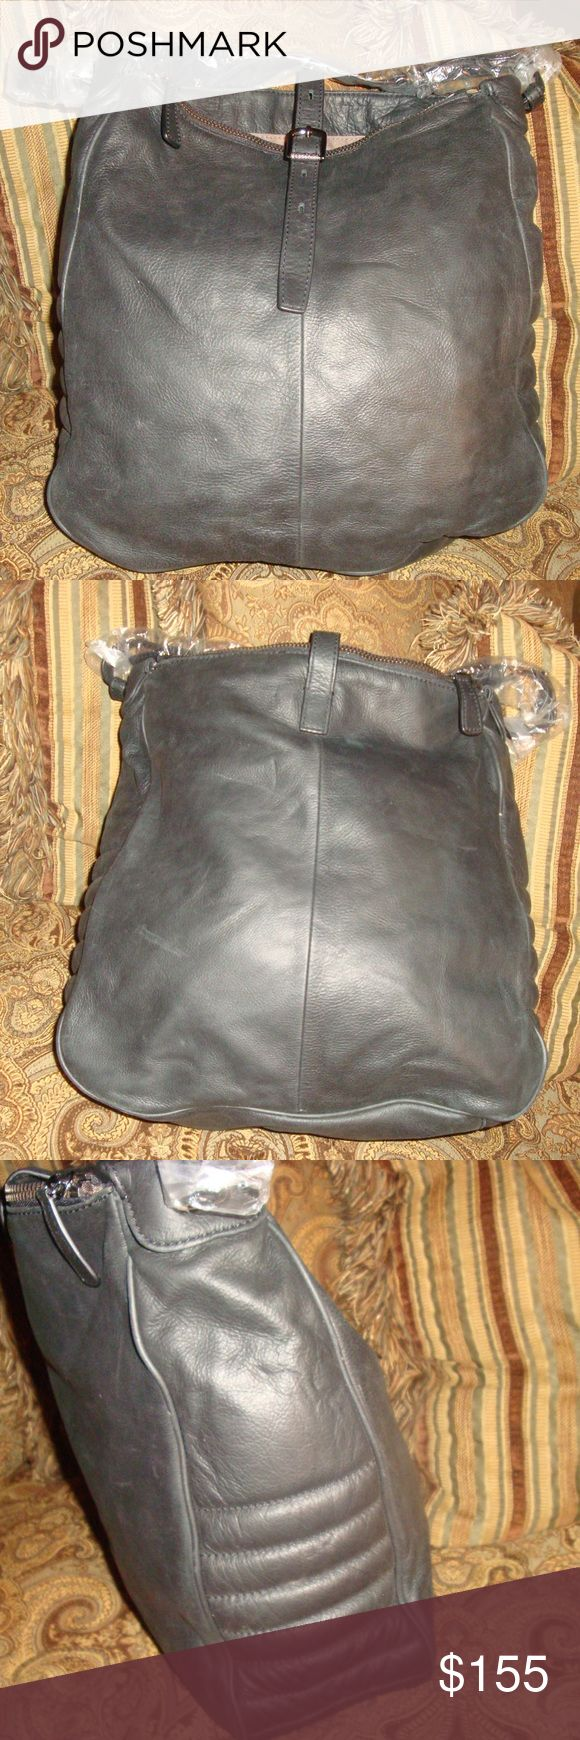 "NWT Black Leather J CREW Hobo Shoulder Bag NWT Black Leather J CREW Hobo Shoulder Tote measures 12 1/2"" X 5"" X 13 1/2"" and has a single 12"" strap drop. This bag has two outer zip compaertments and a center compartment which has a zip pocket and two slip pockets. This is a great bag which has never been used. J Crew Bags Totes"